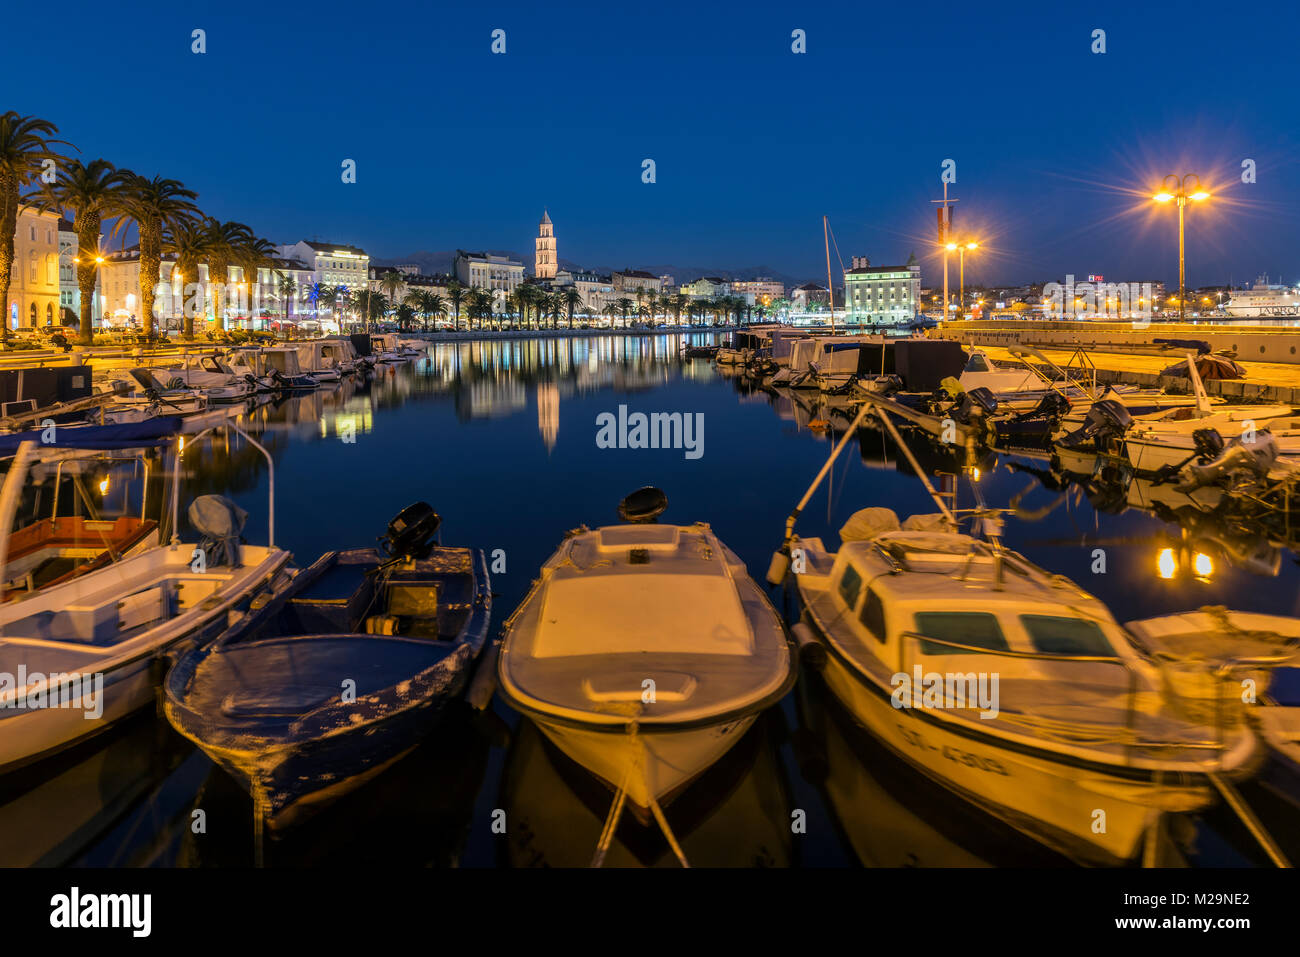 Waterfront and port with Cathedral of St. Domnius in the background, Split, Dalmatia, Croatia - Stock Image